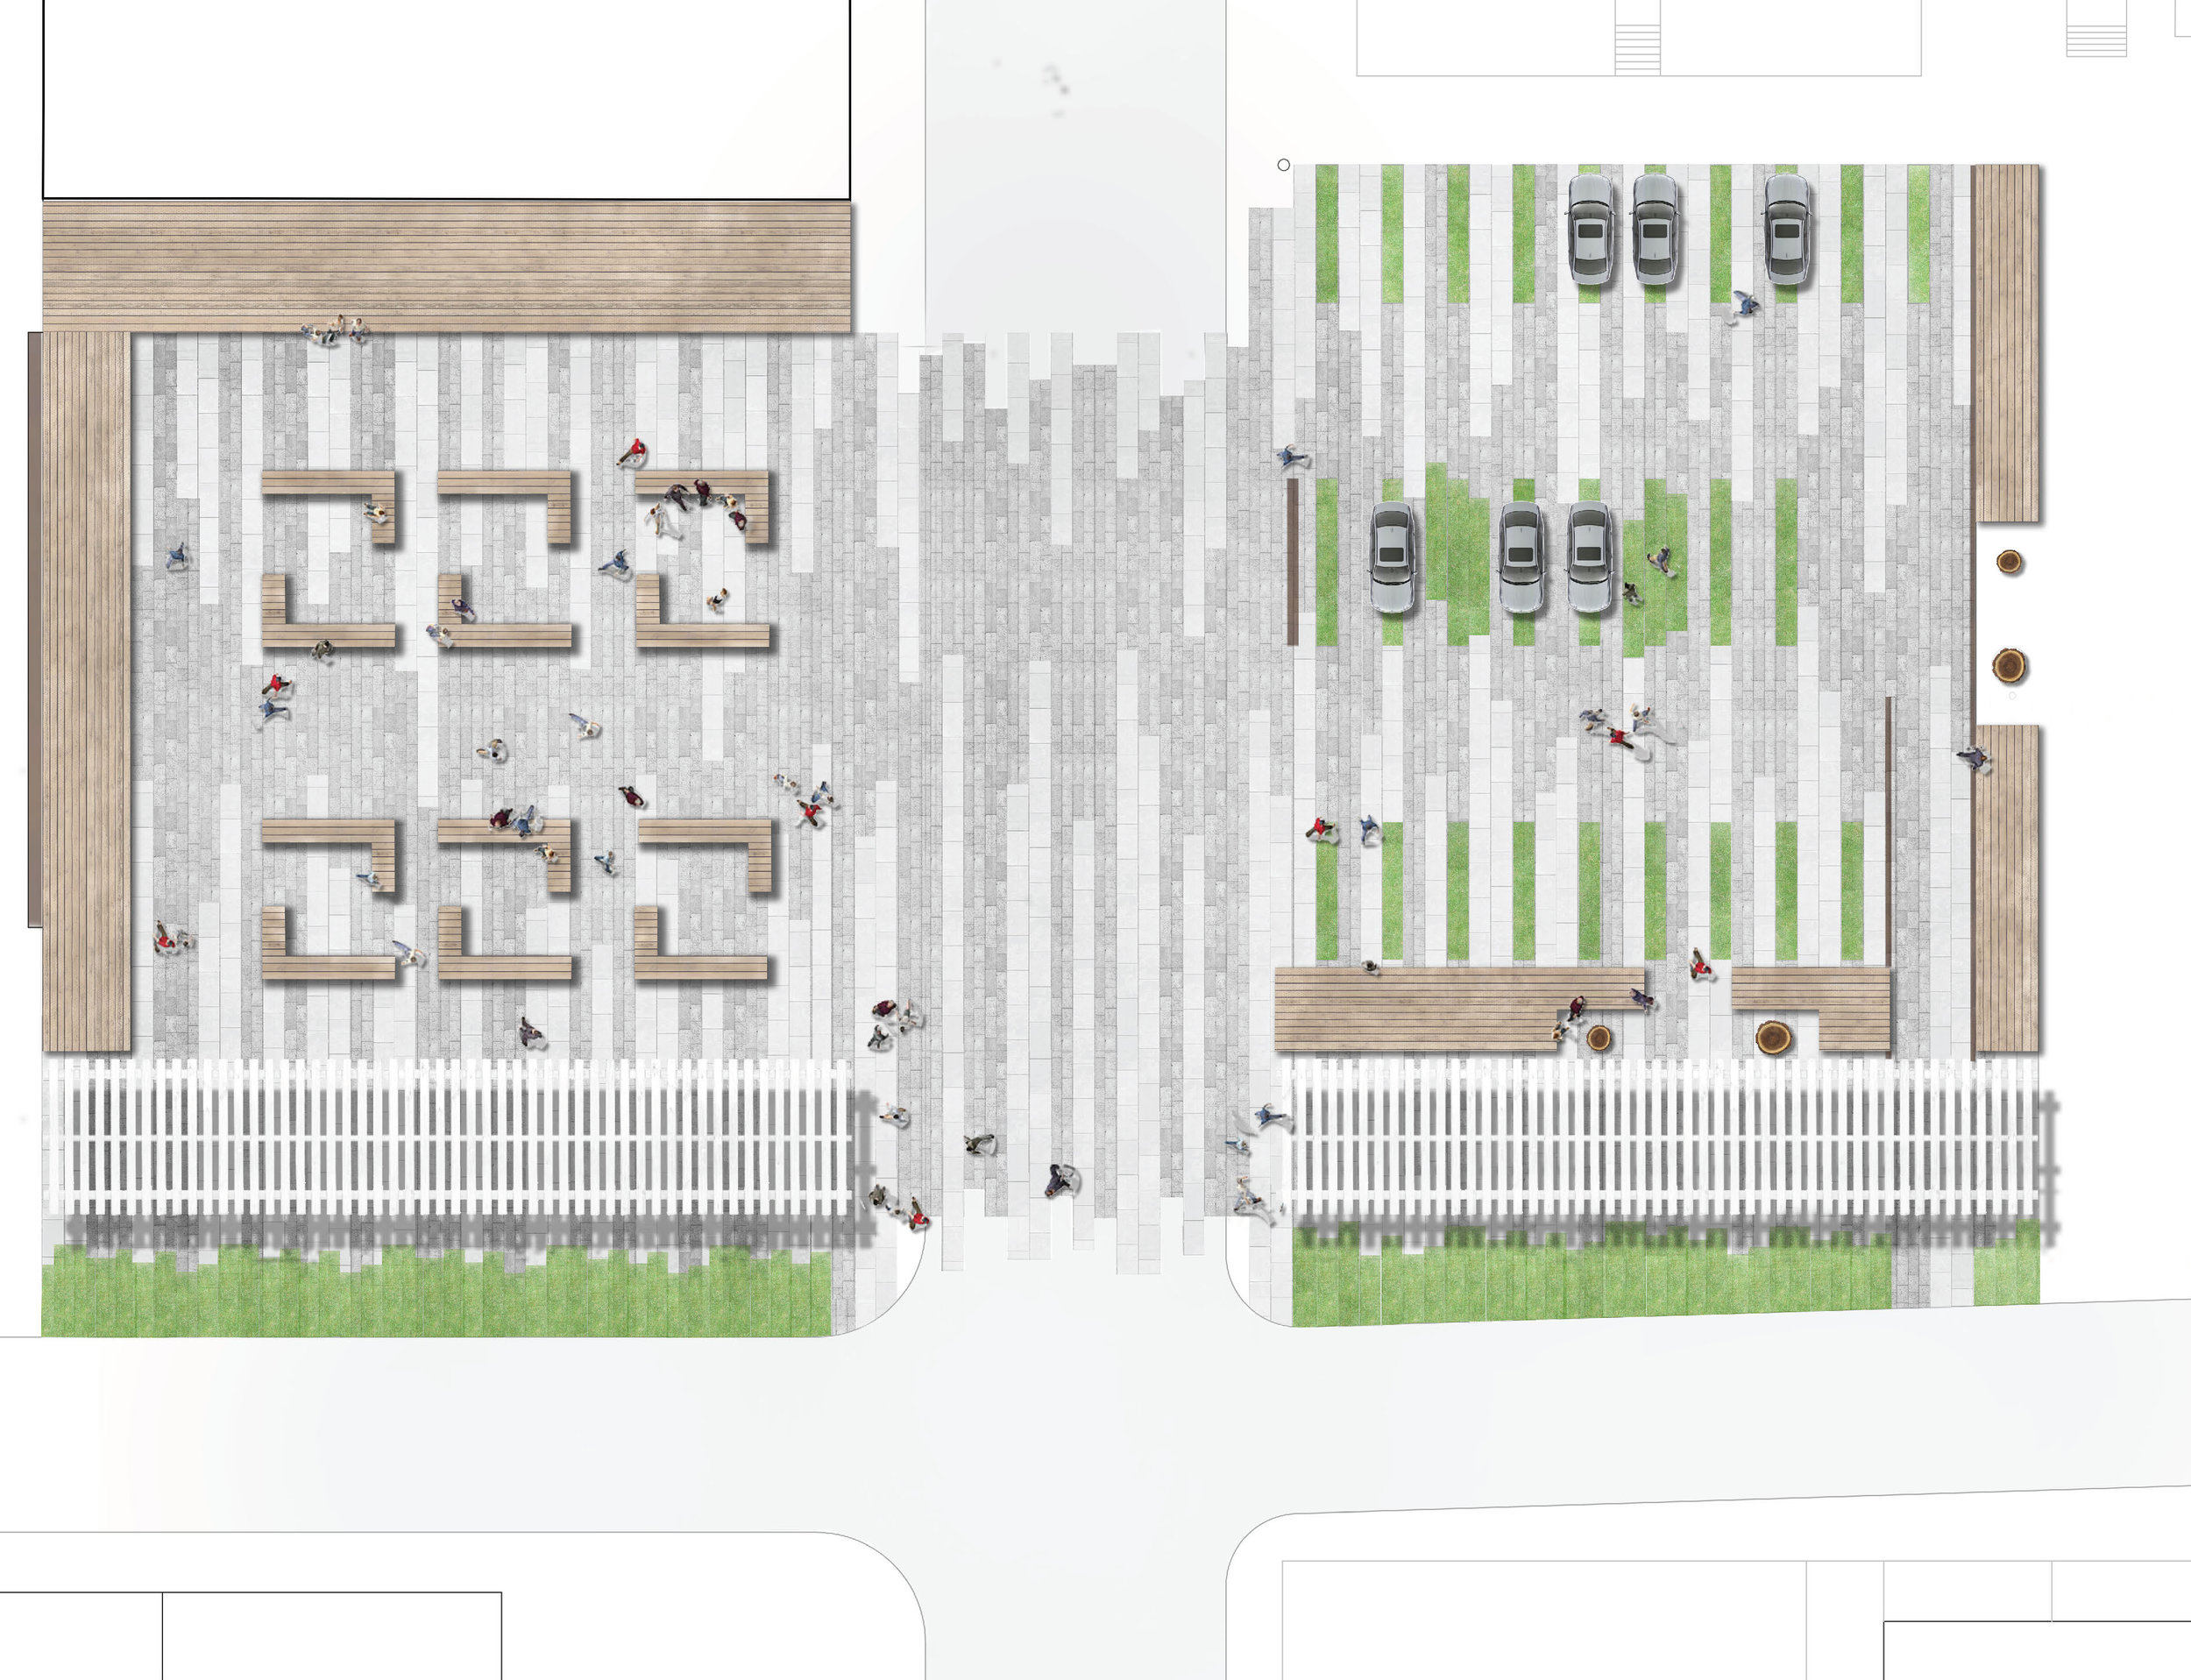 Hickory Lots proposes a public space that defines a boundary,can accommodate parking if needed, as well as commemorates the recent loss of four mature trees